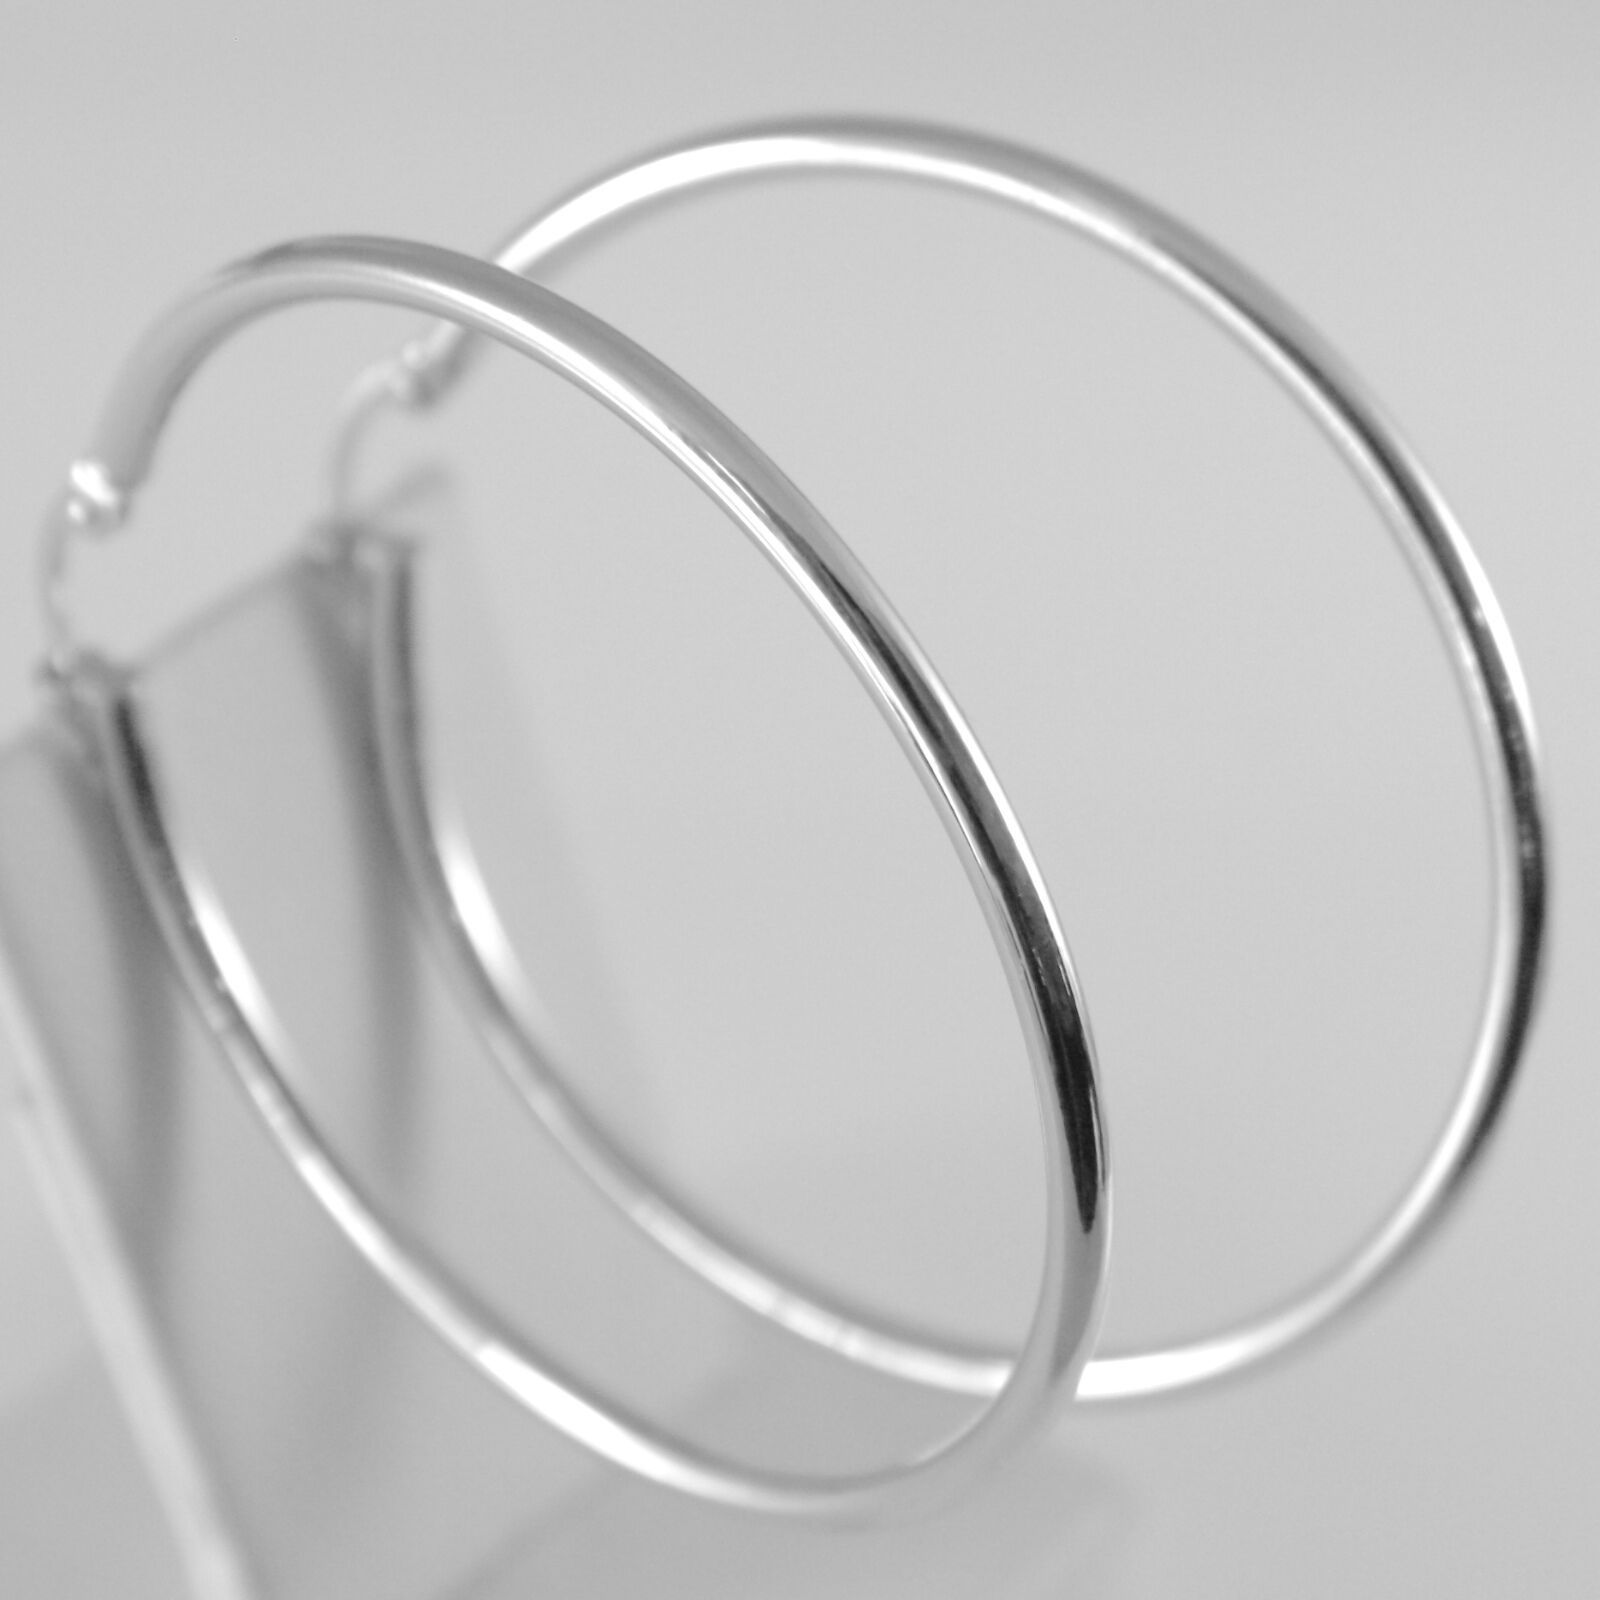 18K WHITE GOLD ROUND CIRCLE EARRINGS DIAMETER 40 MM, WIDTH 2 MM, MADE IN ITALY